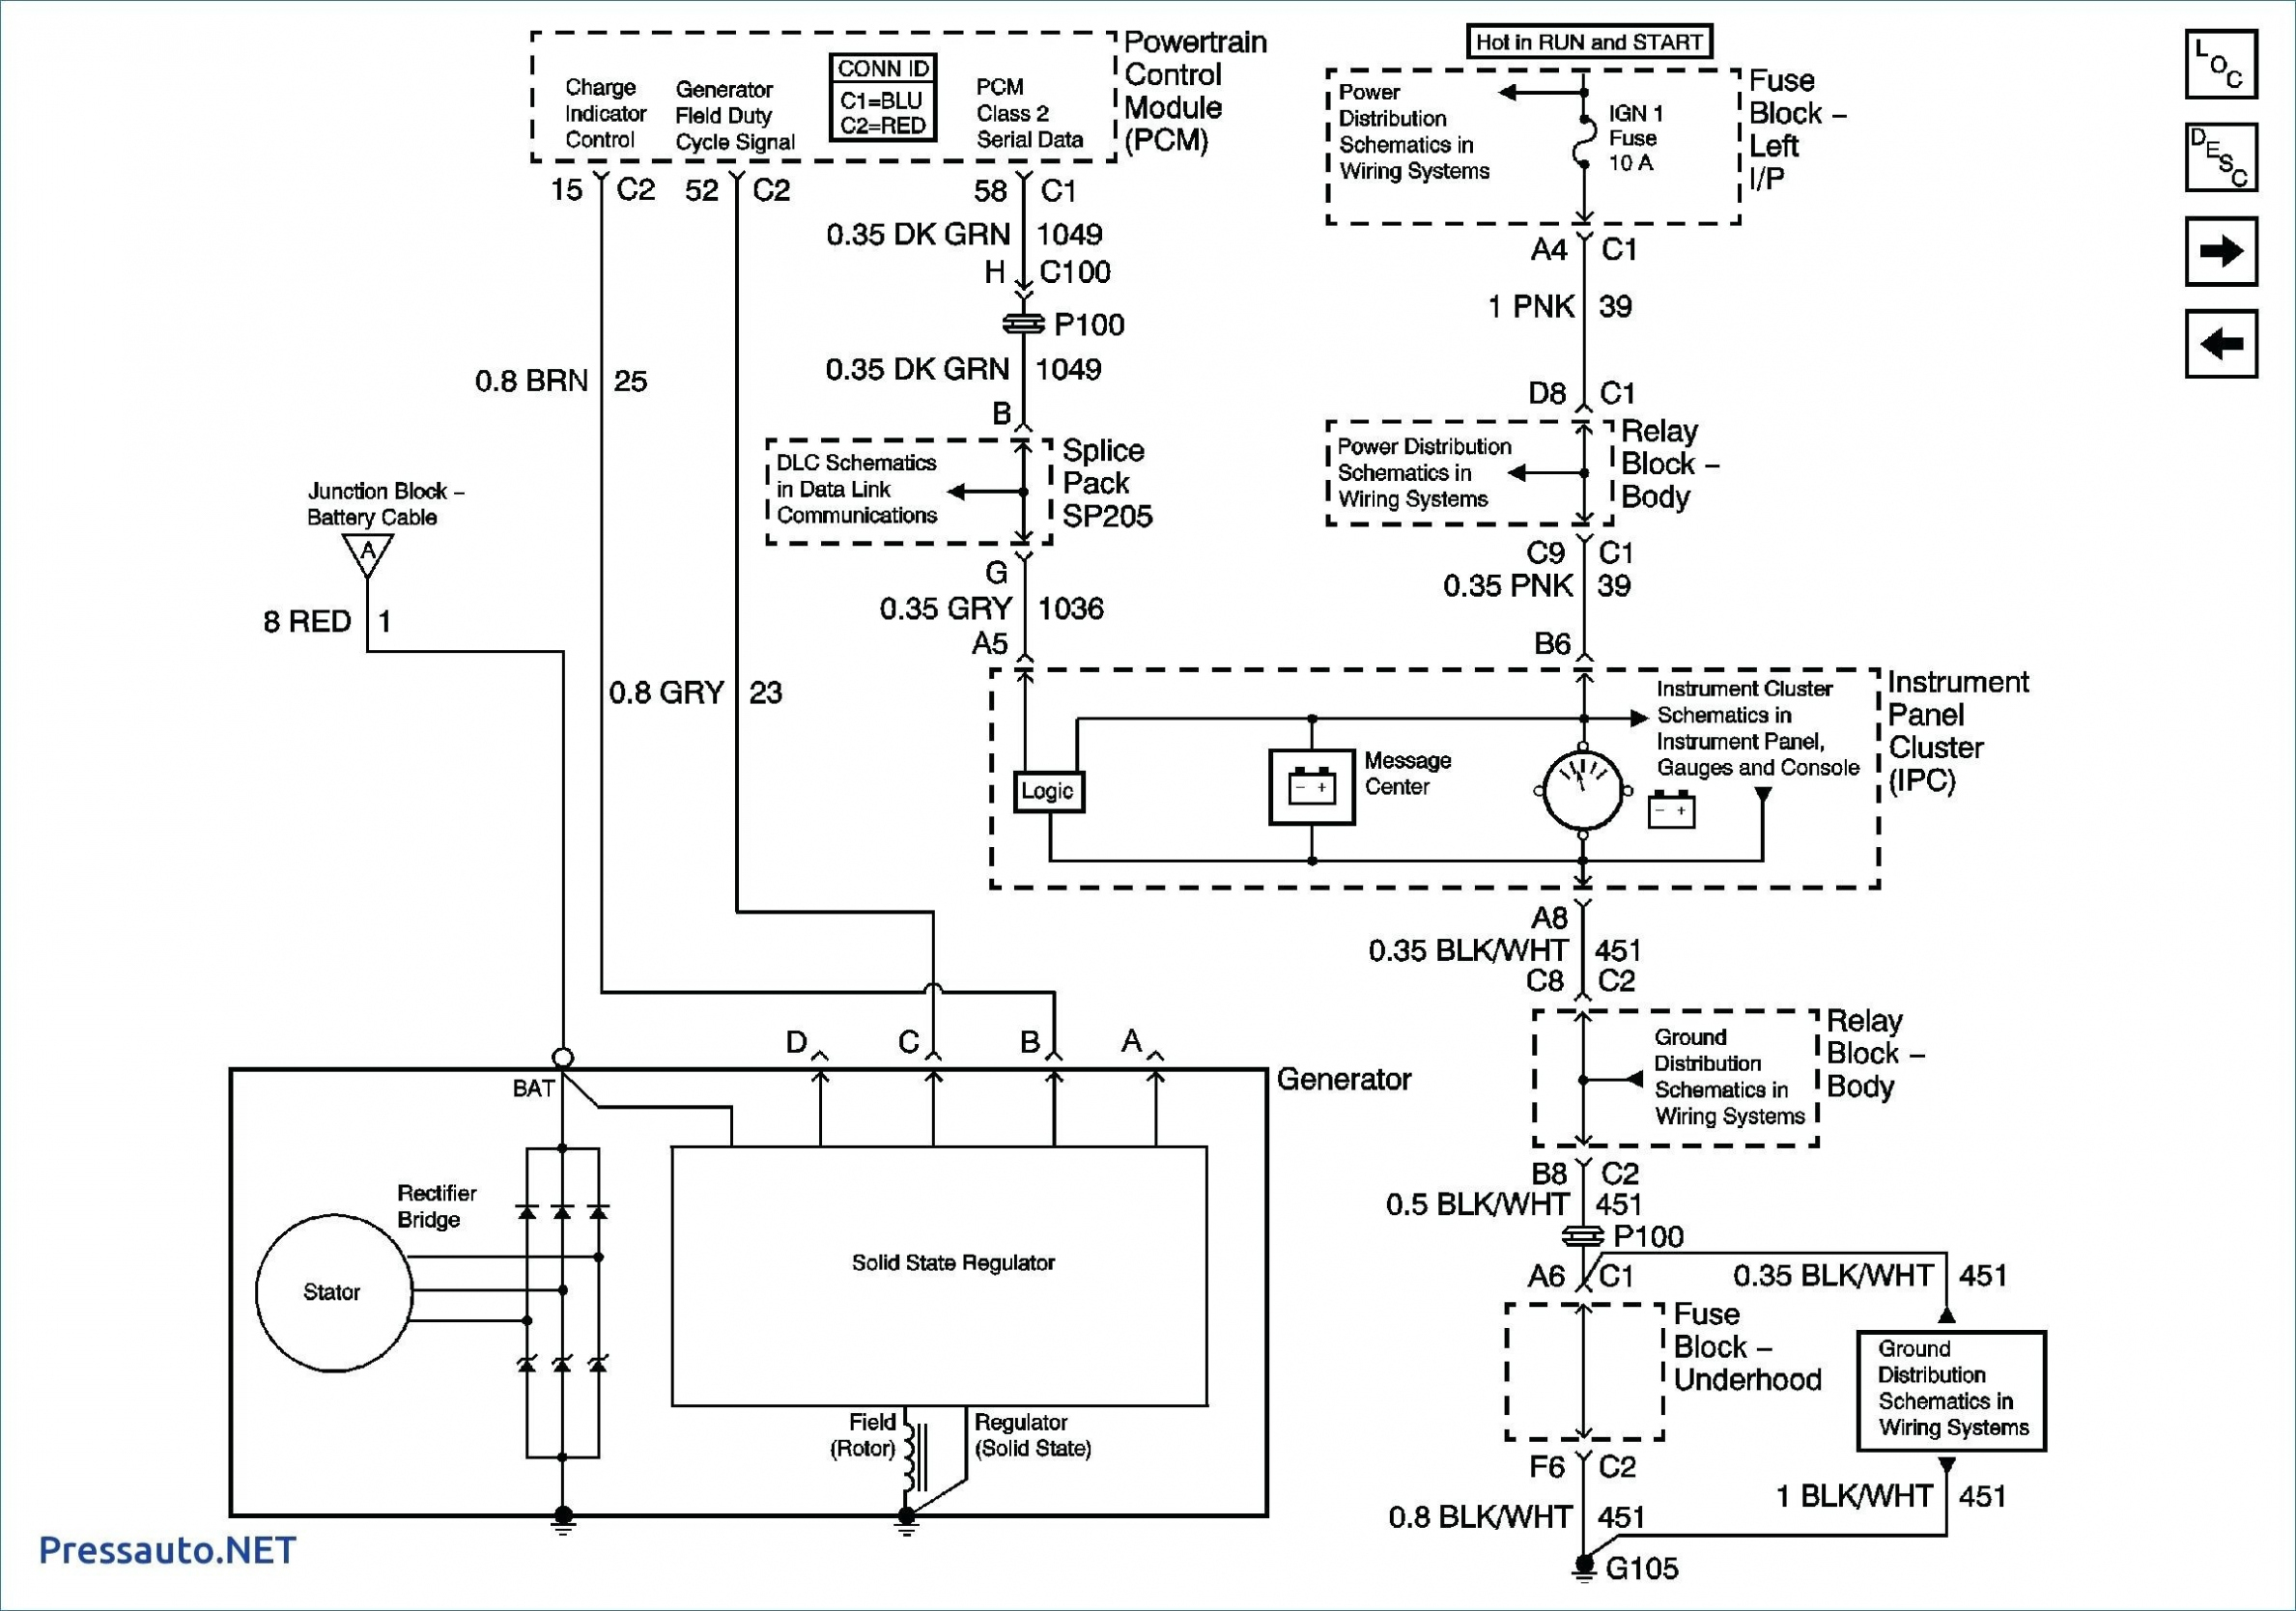 Wiring Diagram For Internally Regulated Alternator Save Gm – Gm - Gm Alternator Wiring Diagram Internal Regulator